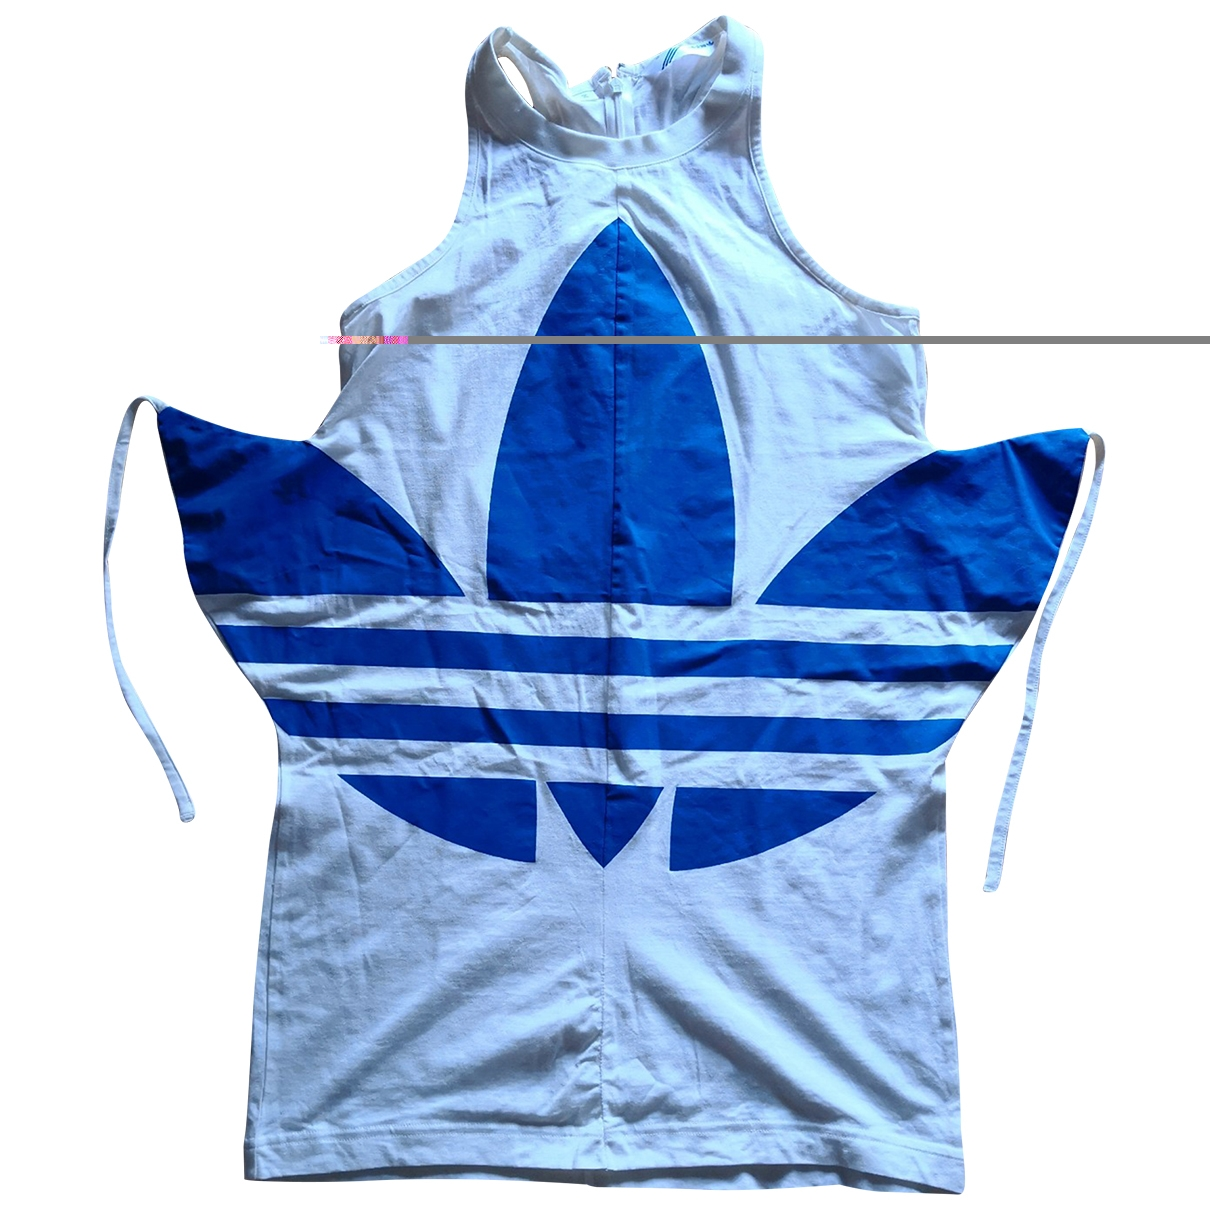 Adidas \N White Cotton  top for Women 38 FR